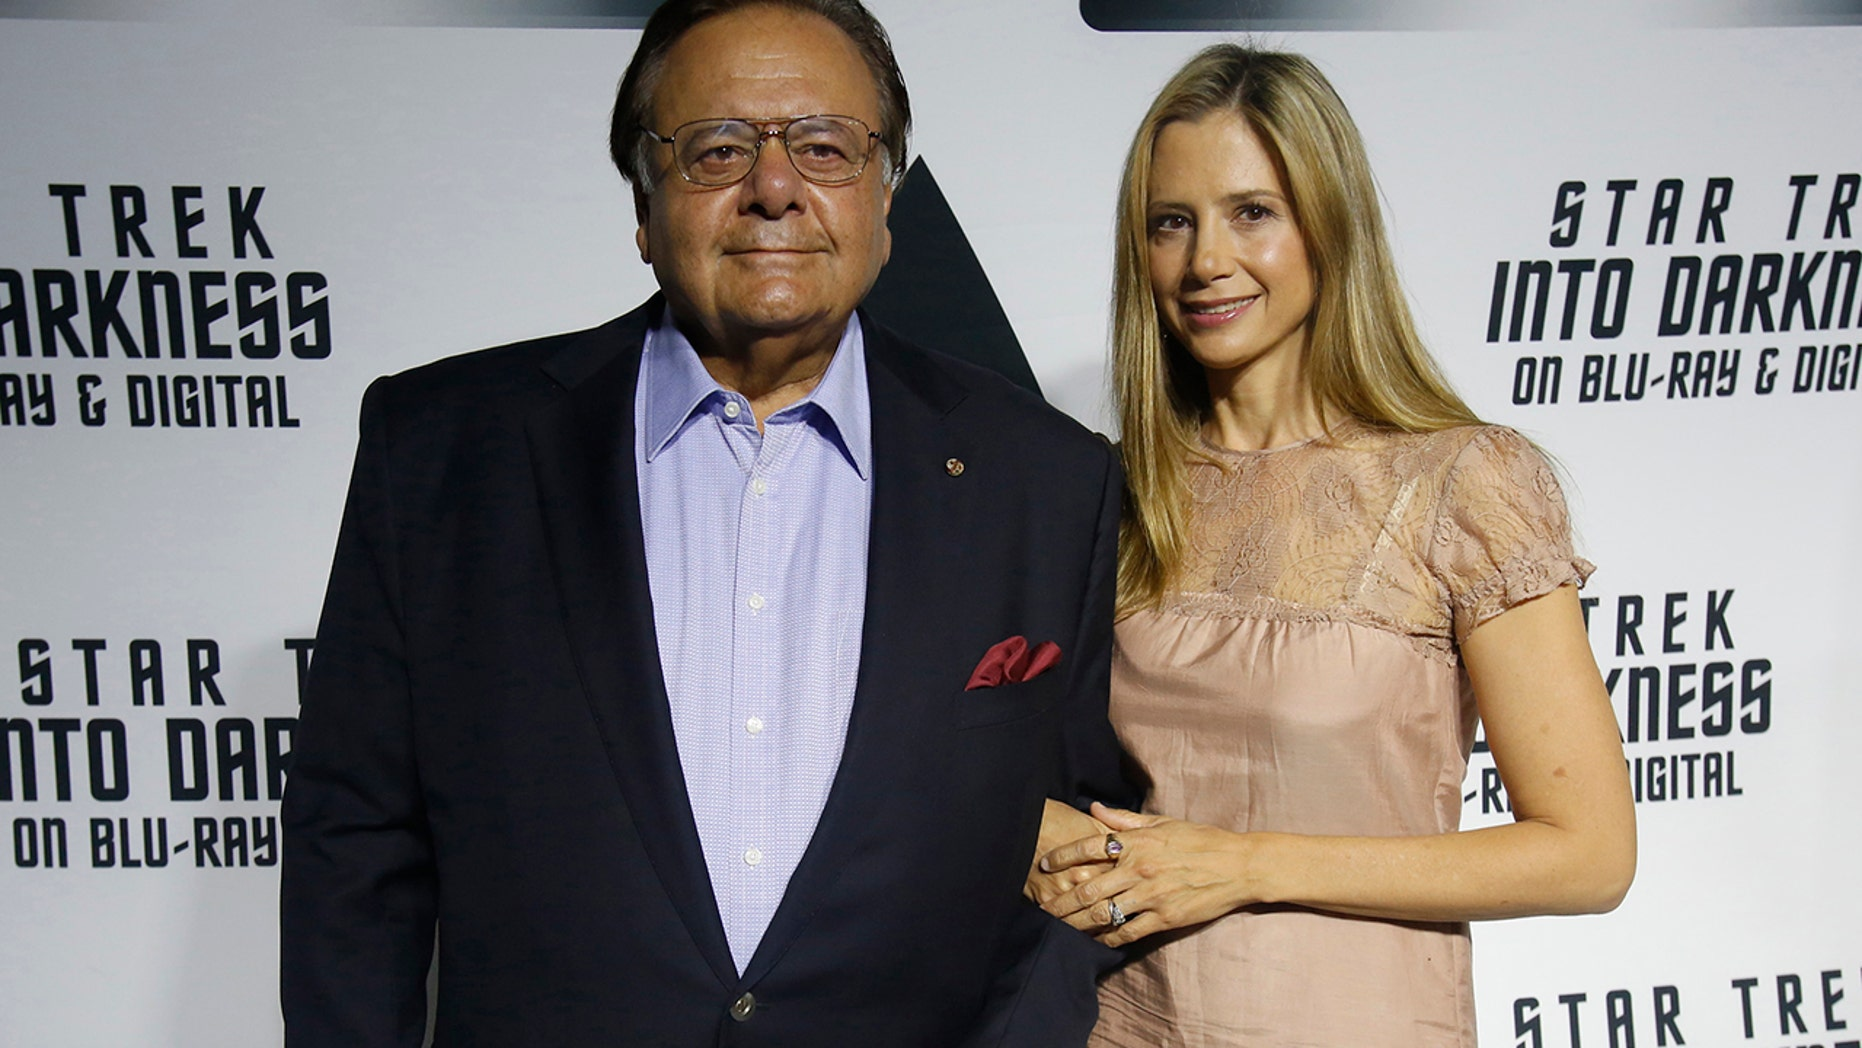 """Actor Paul Sorvino and his daughter actress Mira Sorvino pose at the party for the release of the Blu-Ray DVD of """"Star Trek Into Darkness"""" at the California Science Center in Los Angeles, California September 10, 2013."""